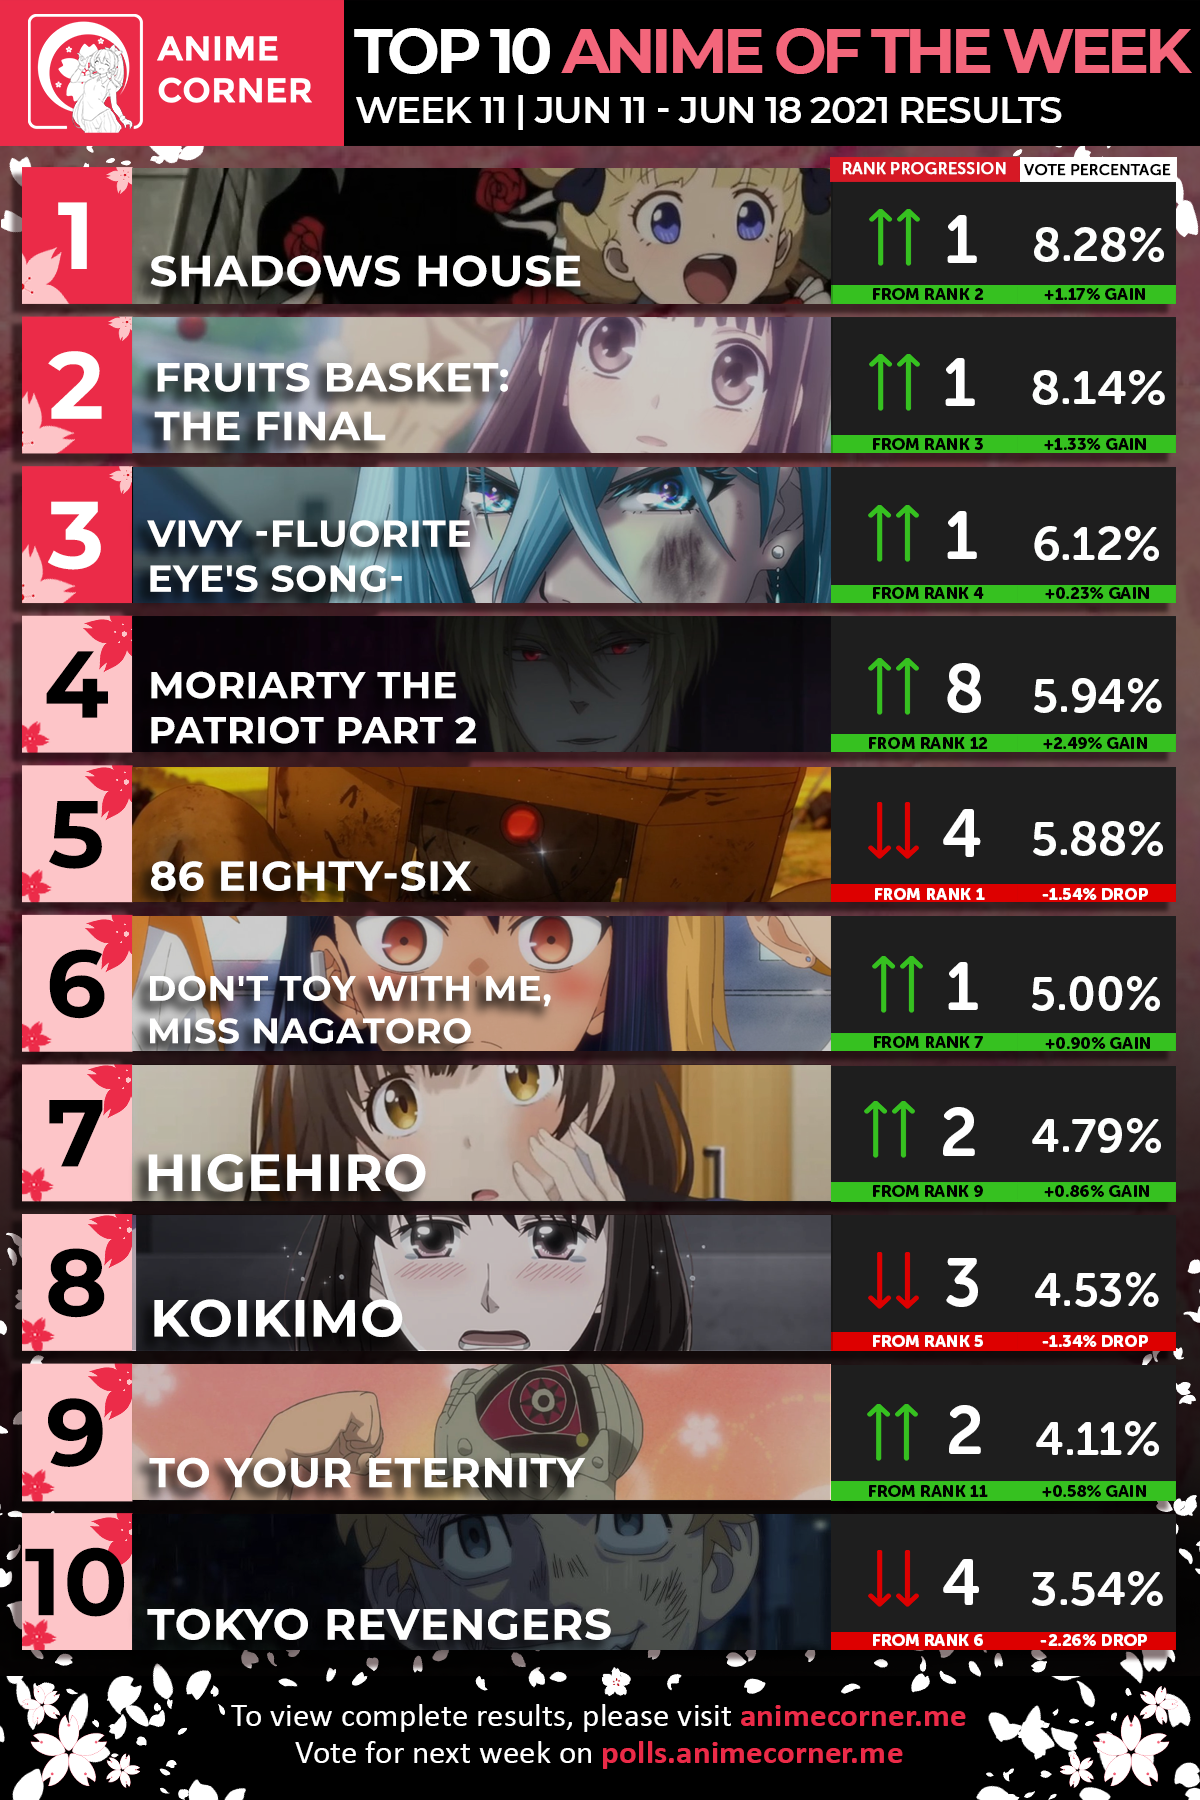 Spring 2021 Anime of the Week #11 - Anime Corner Polls - Results